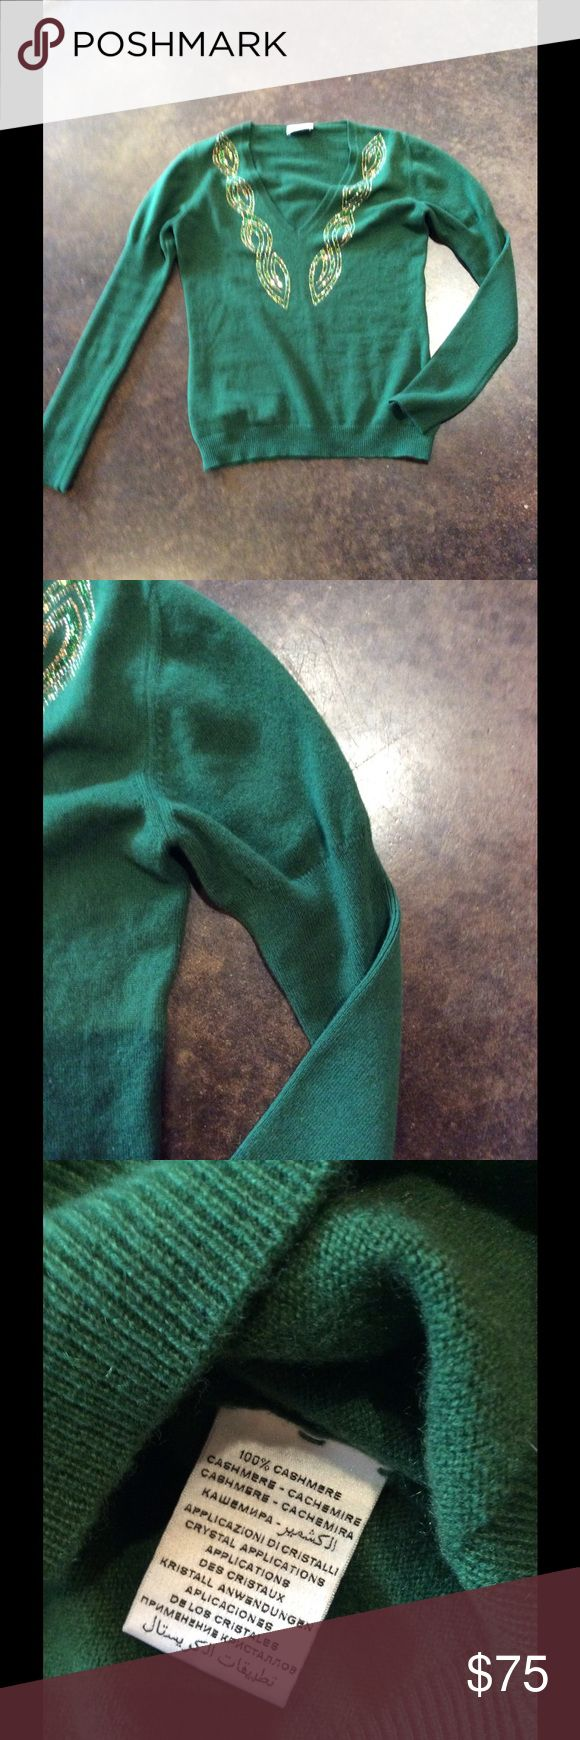 Monica Mastella Green with crystals 4-5 Ply Cash L Beautiful and perfect worn with no problems. This is a small designer in Treviso Italy. Home of prosecco yummmm.... best for an 8-10. No trades price is firm offers not accepted monica mastella Sweaters V-Necks